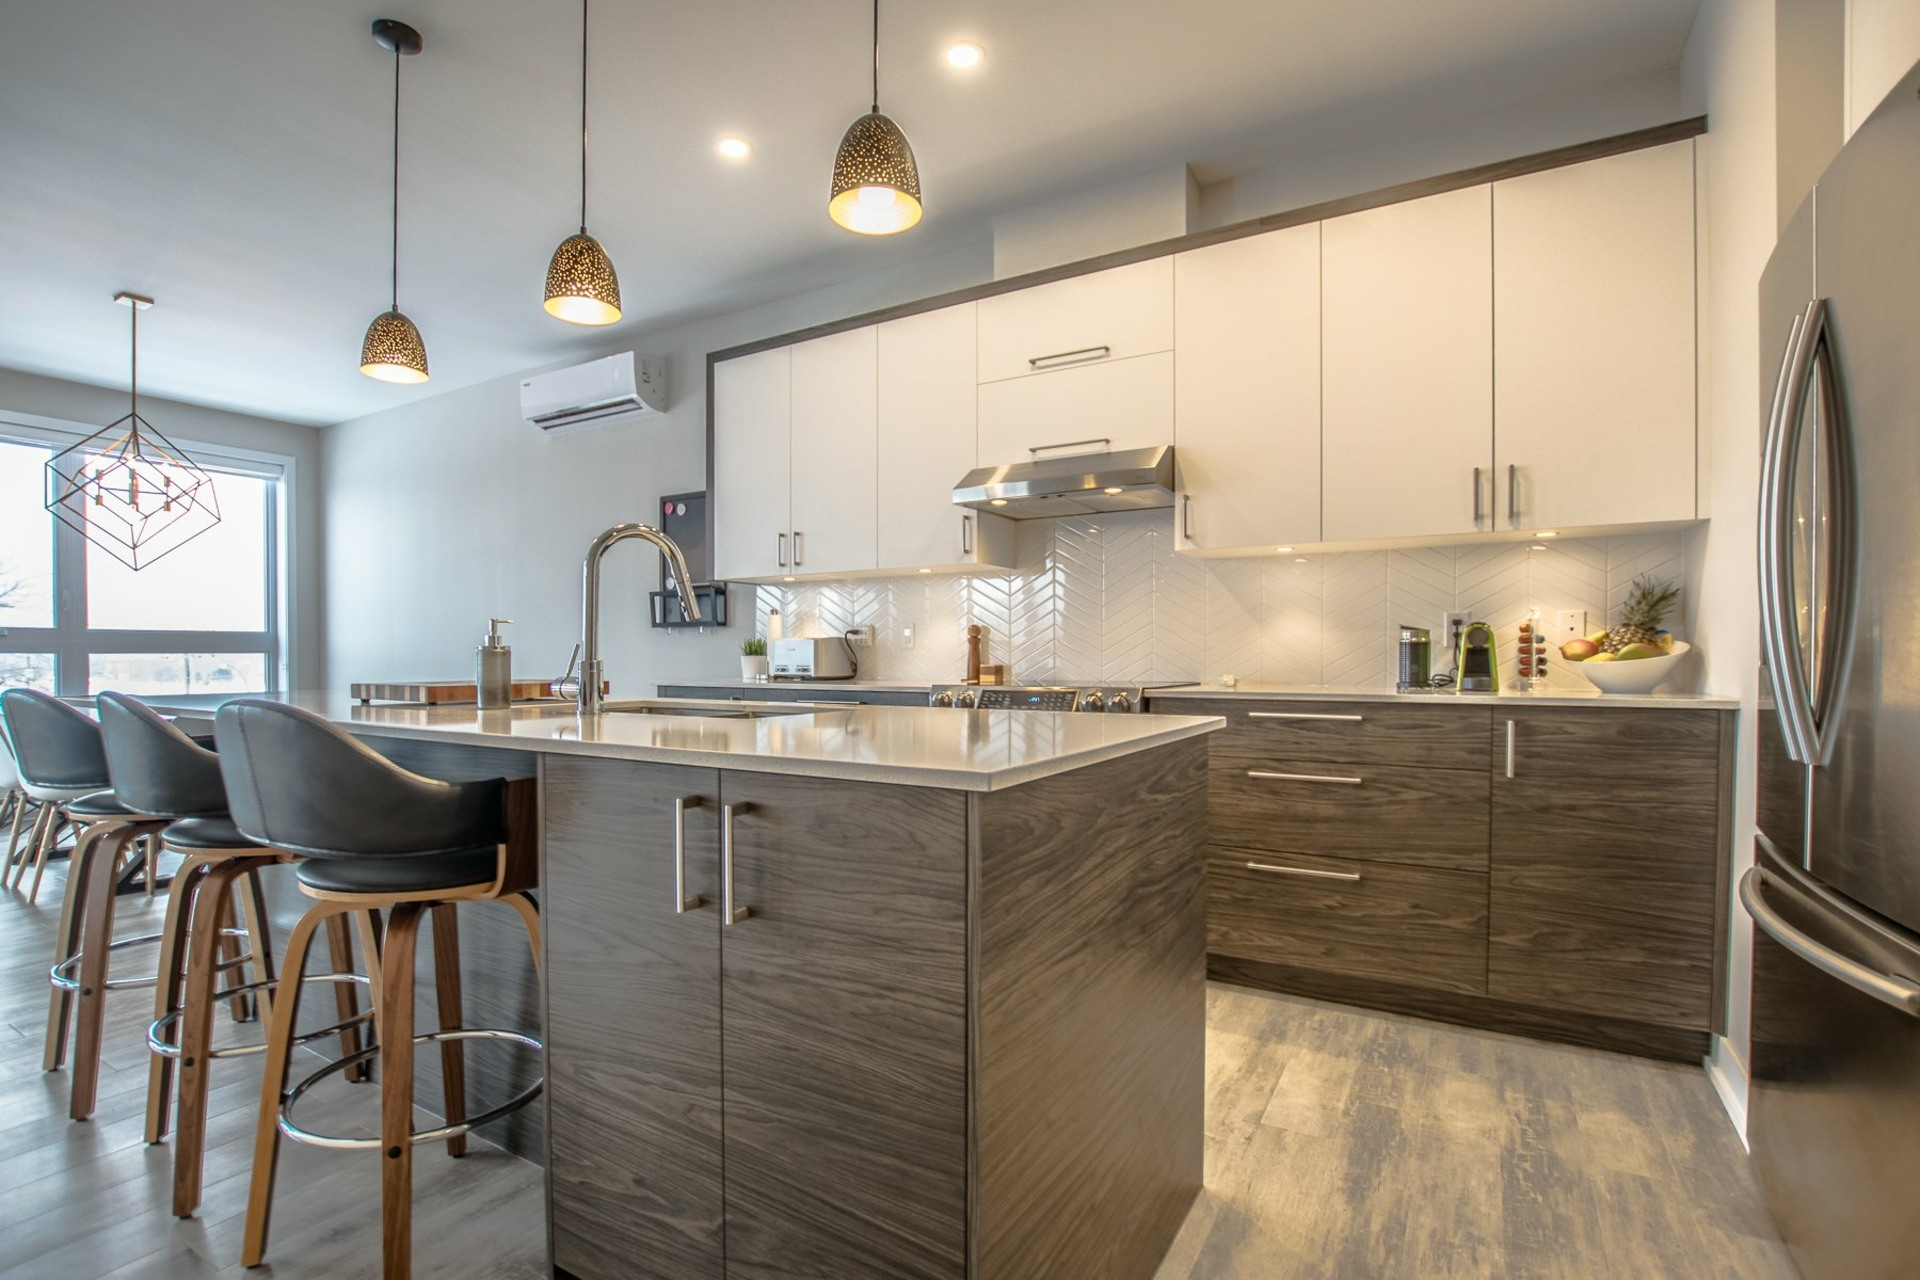 image 1 - Apartment For sale Sainte-Catherine - 6 rooms